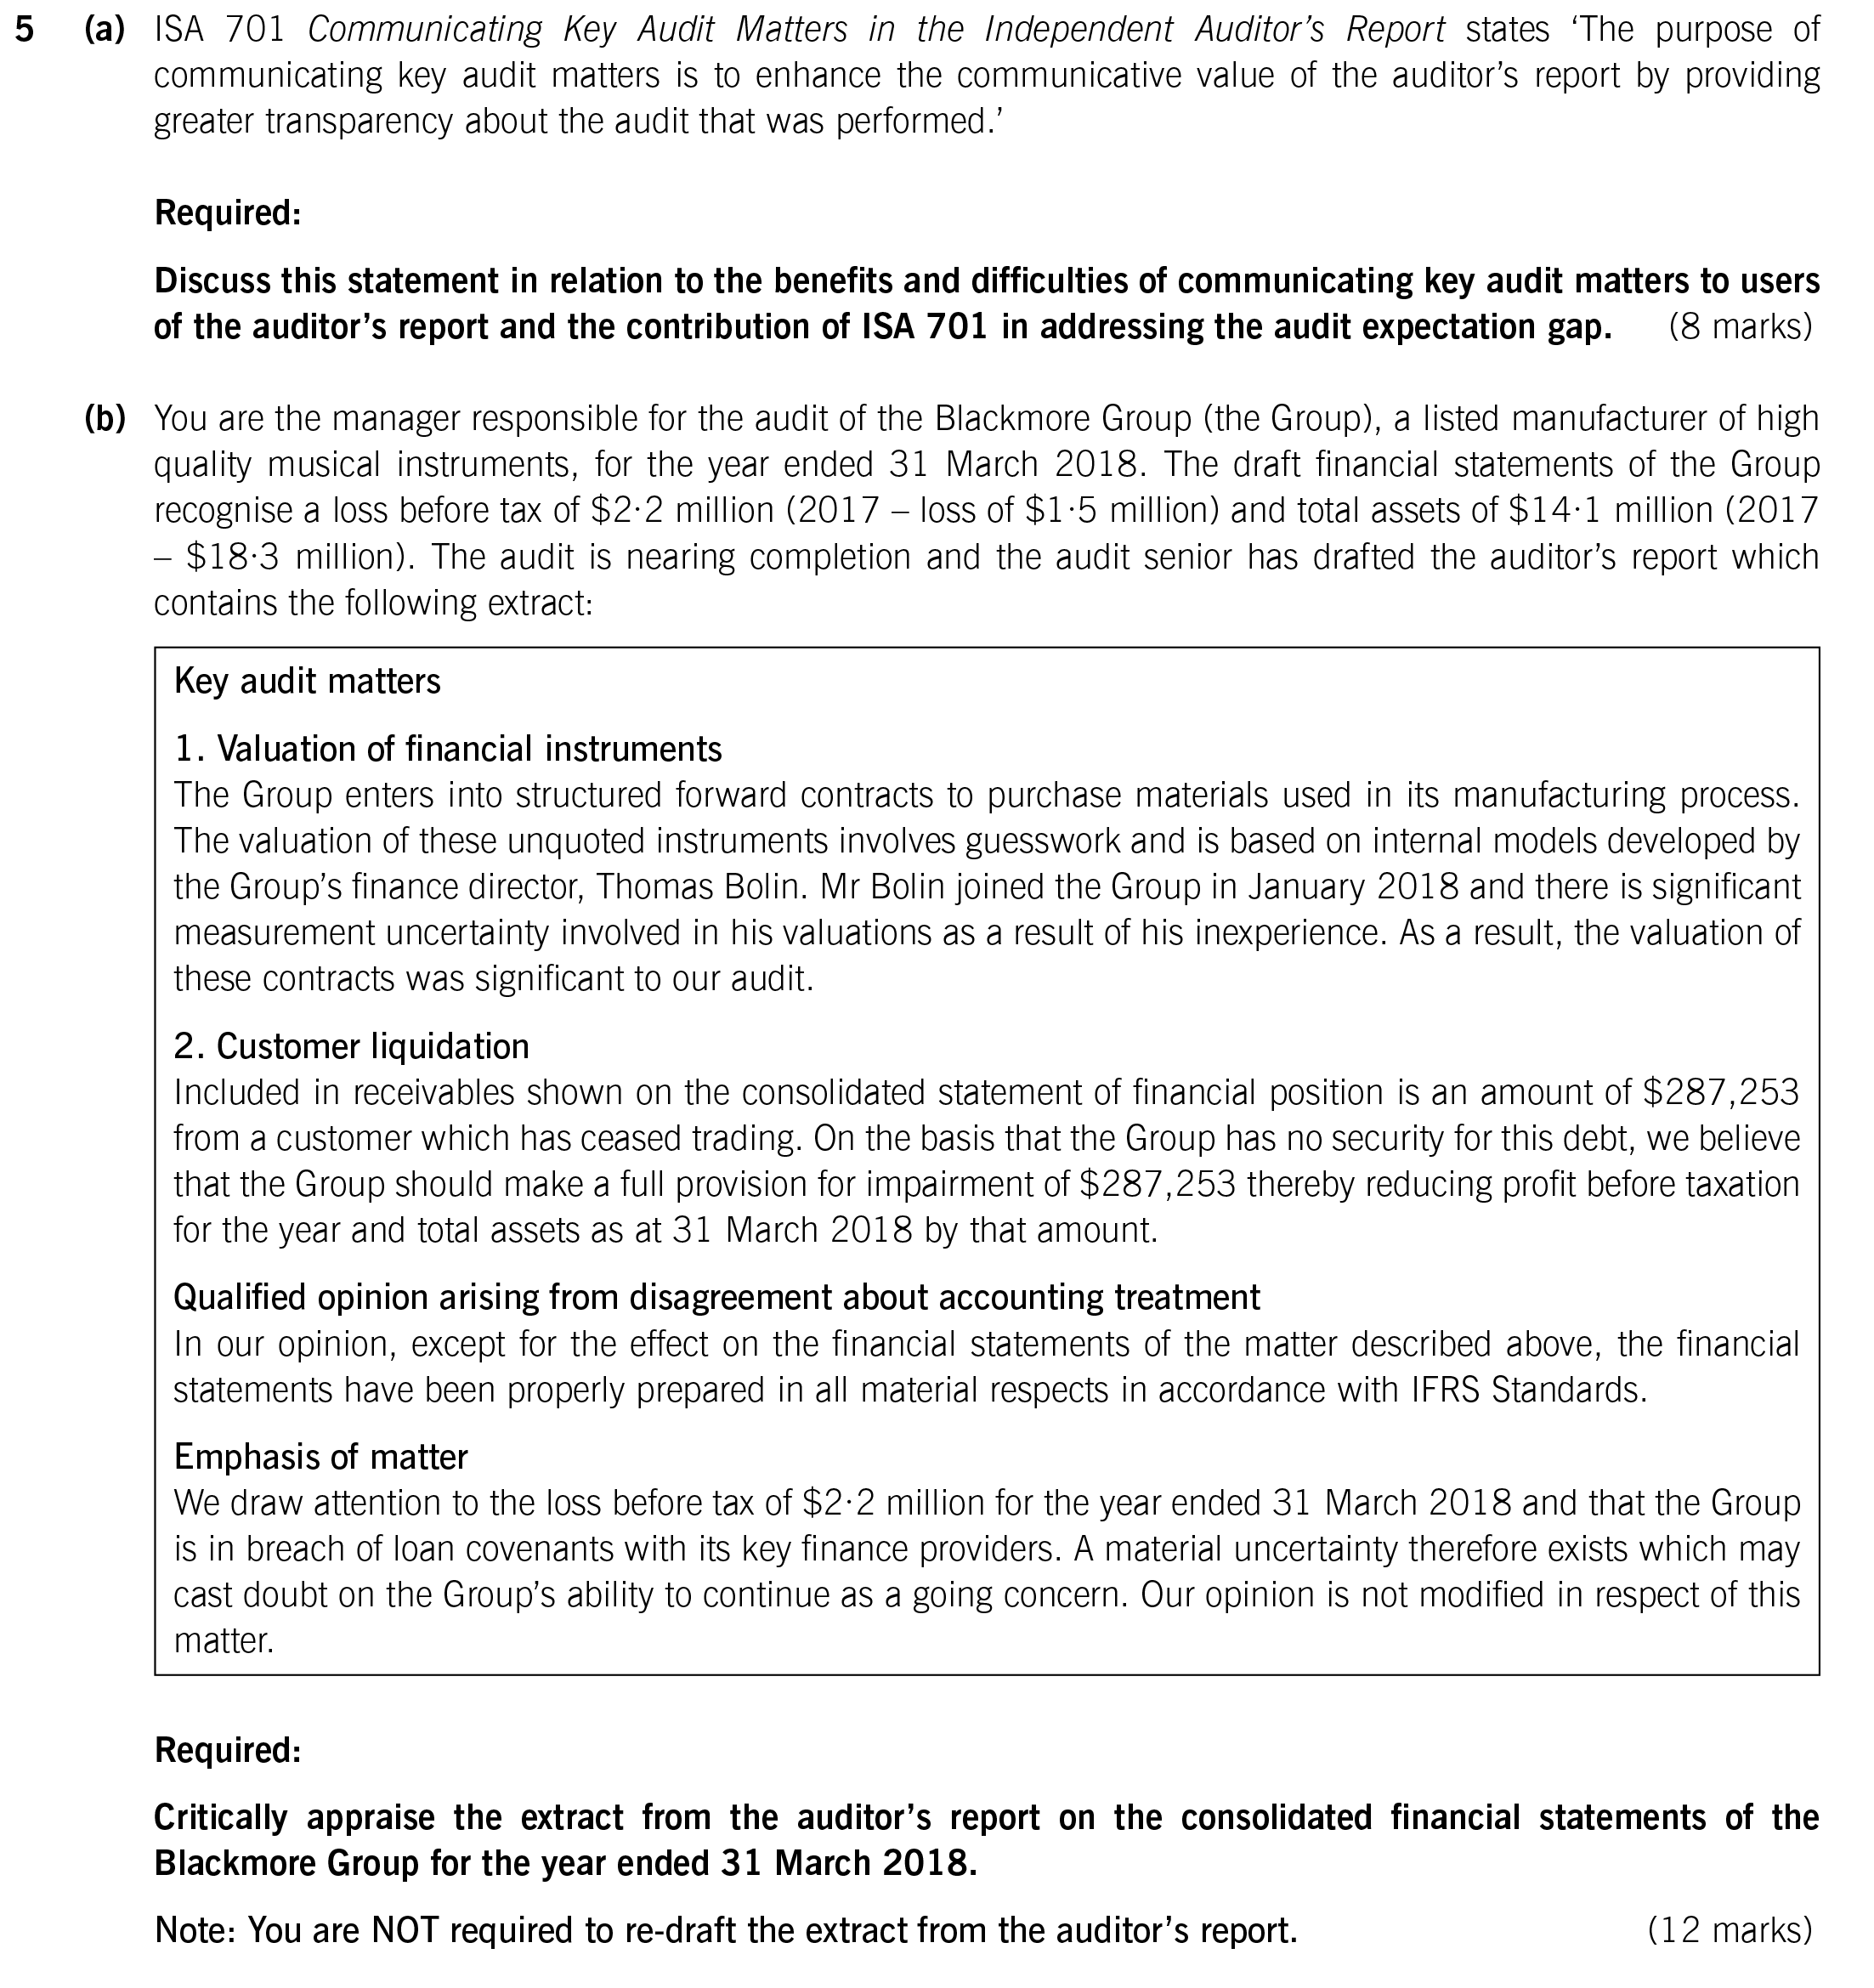 ACCA AAA (P7 INT) Past papers - Question 5 - <time datetime